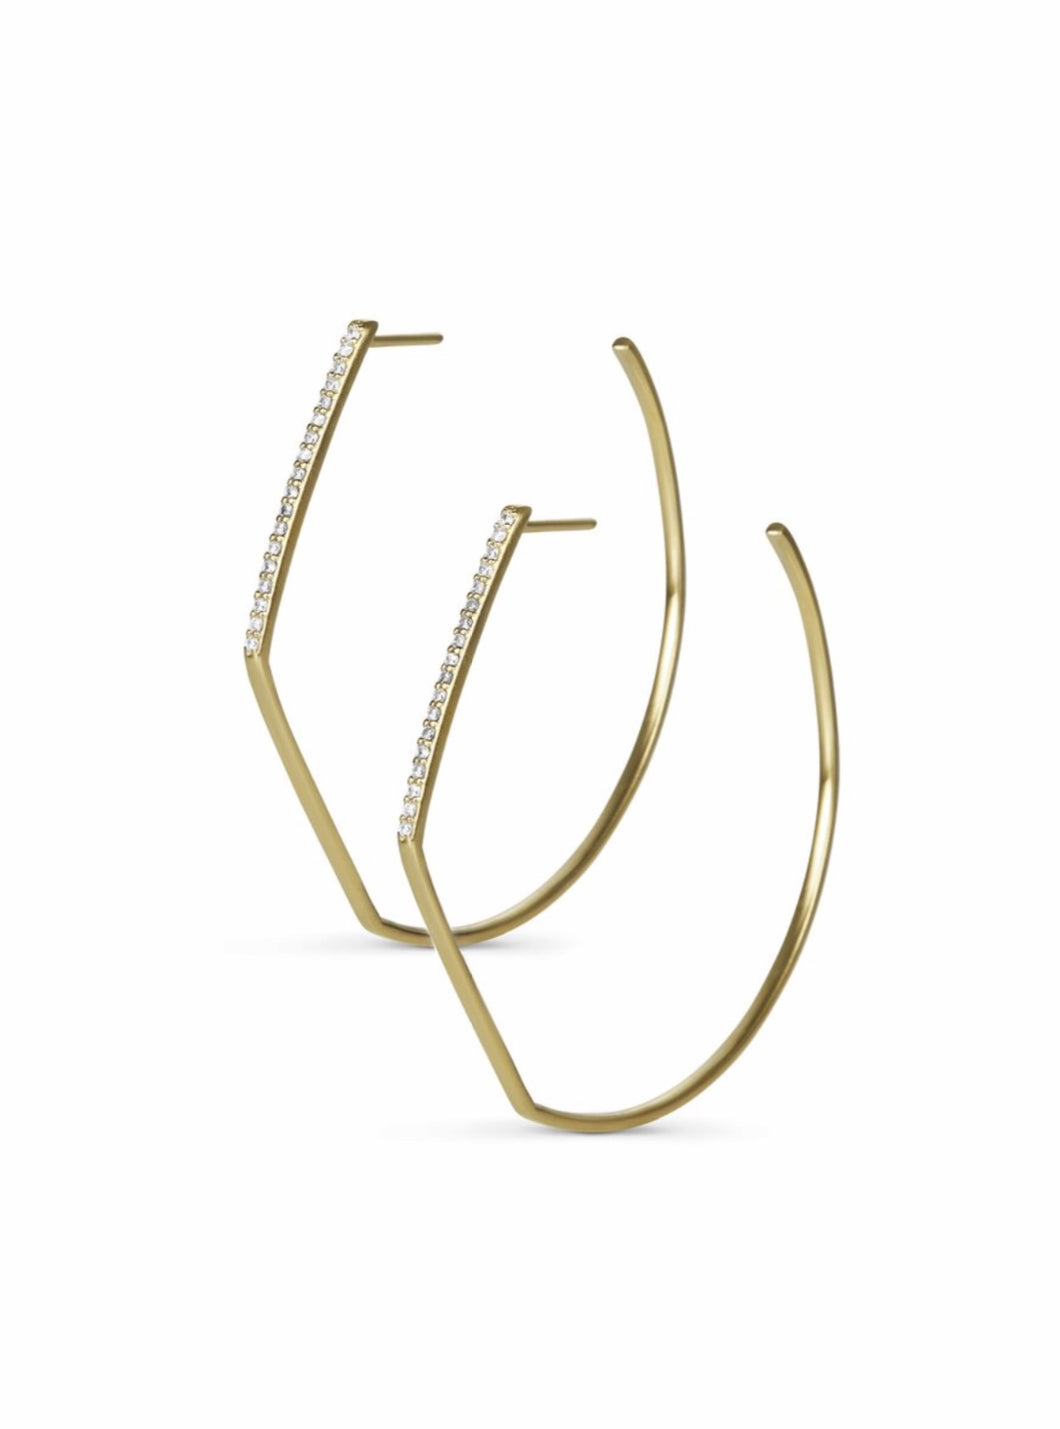 Dean Davidson Spire Hoop Earrings!